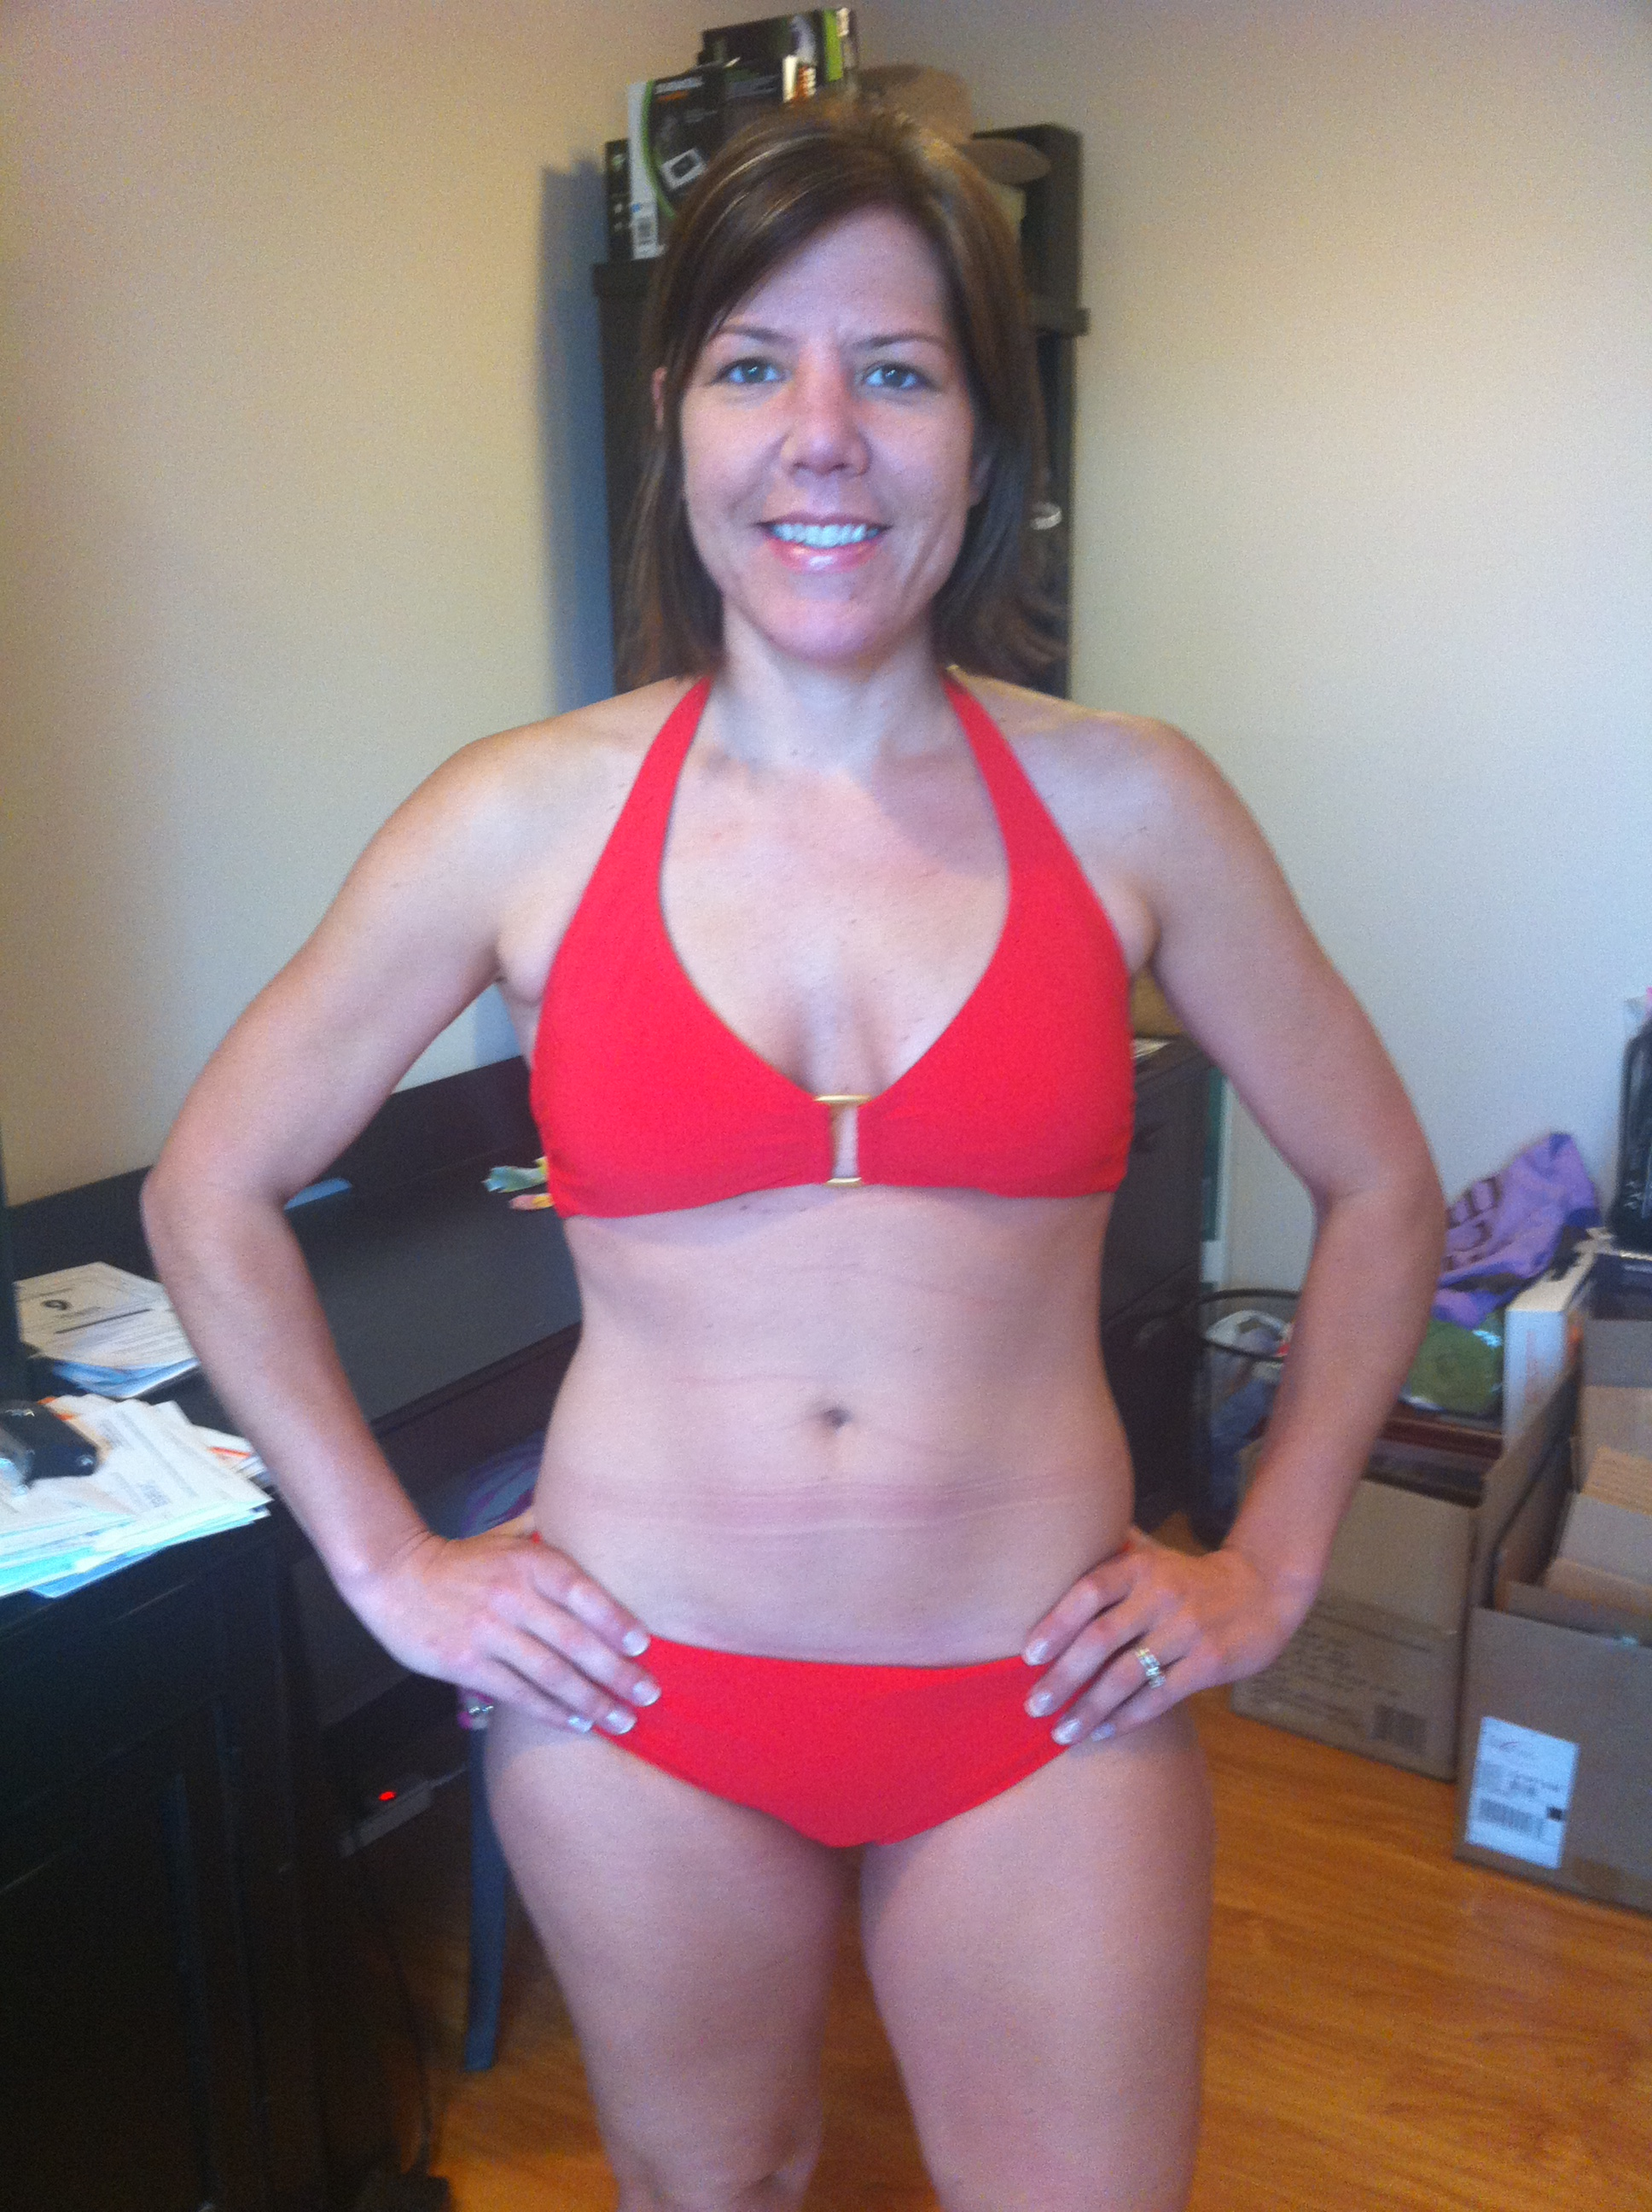 a2886db9b84e8 Swimsuit Confidence and a Post Baby Body - Savvy Sassy Moms